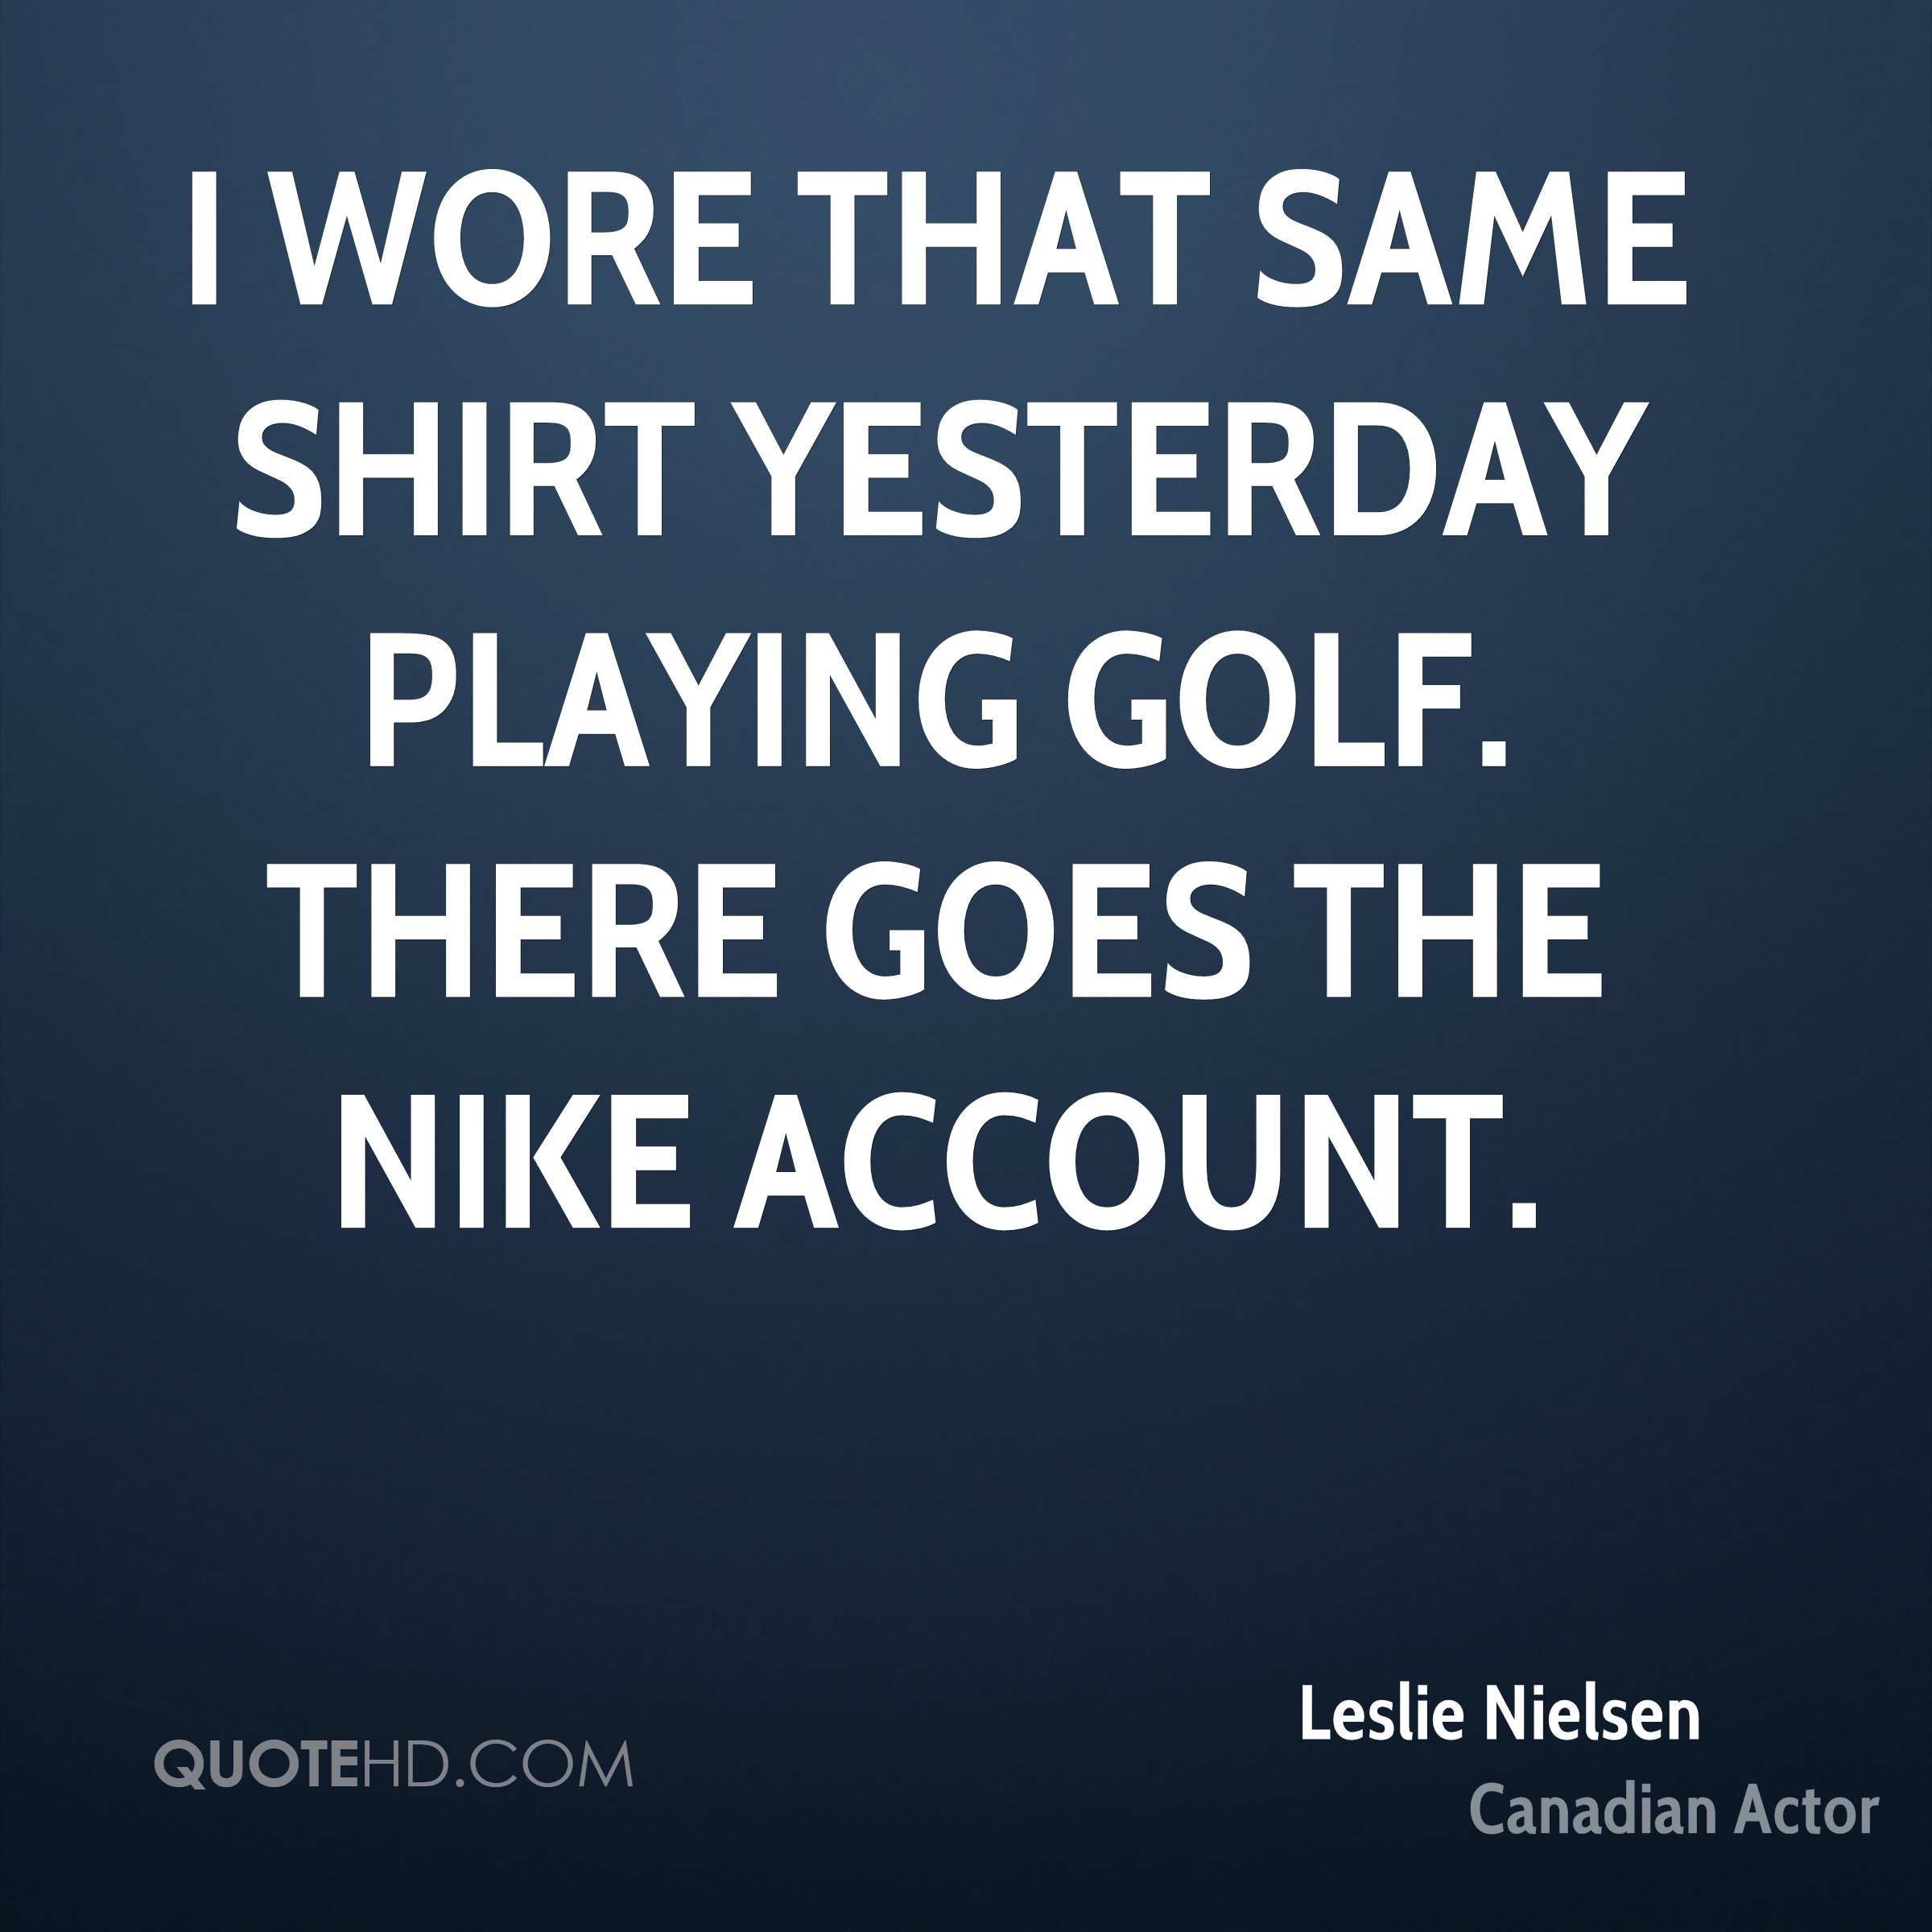 I wore that same shirt yesterday playing golf. There goes the Nike account.